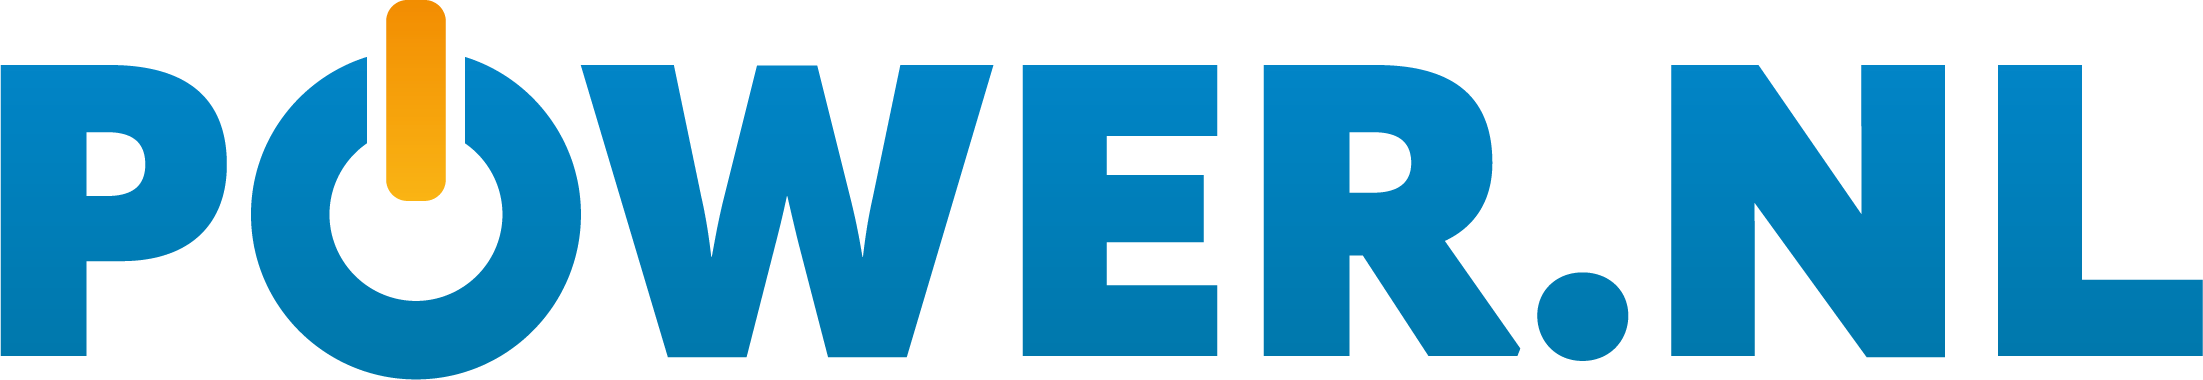 Redeal with Webp power png logo